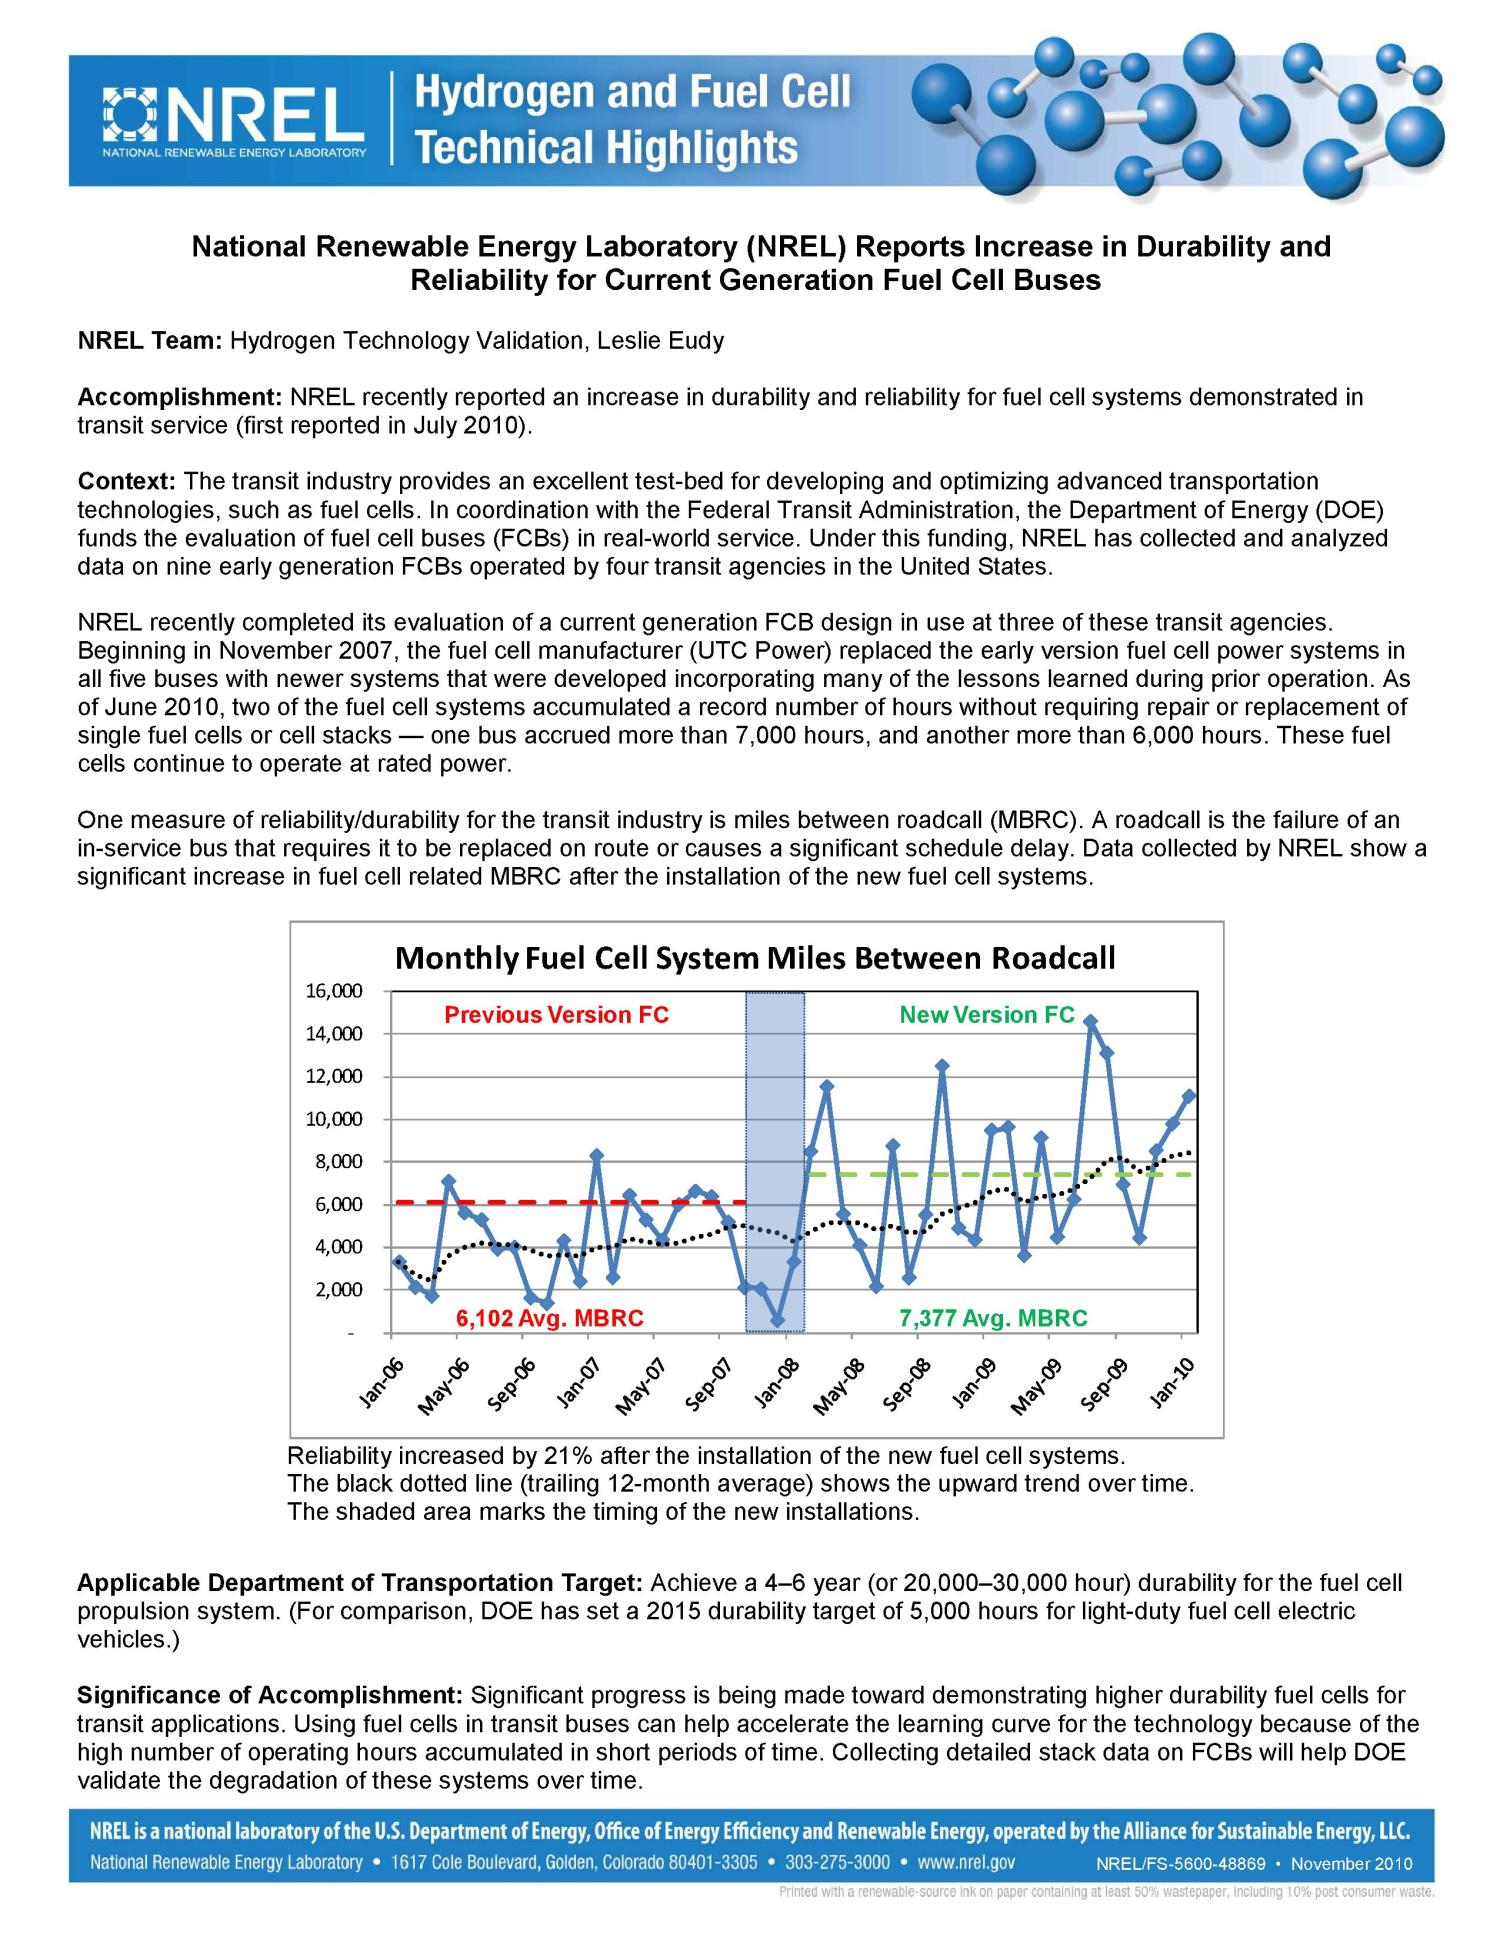 National Renewable Energy Laboratory (NREL) Reports Increase in Durability and Reliability for Current Generation Fuel Cell Buses (Fact Sheet)                                                                                                      [Sequence #]: 1 of 1